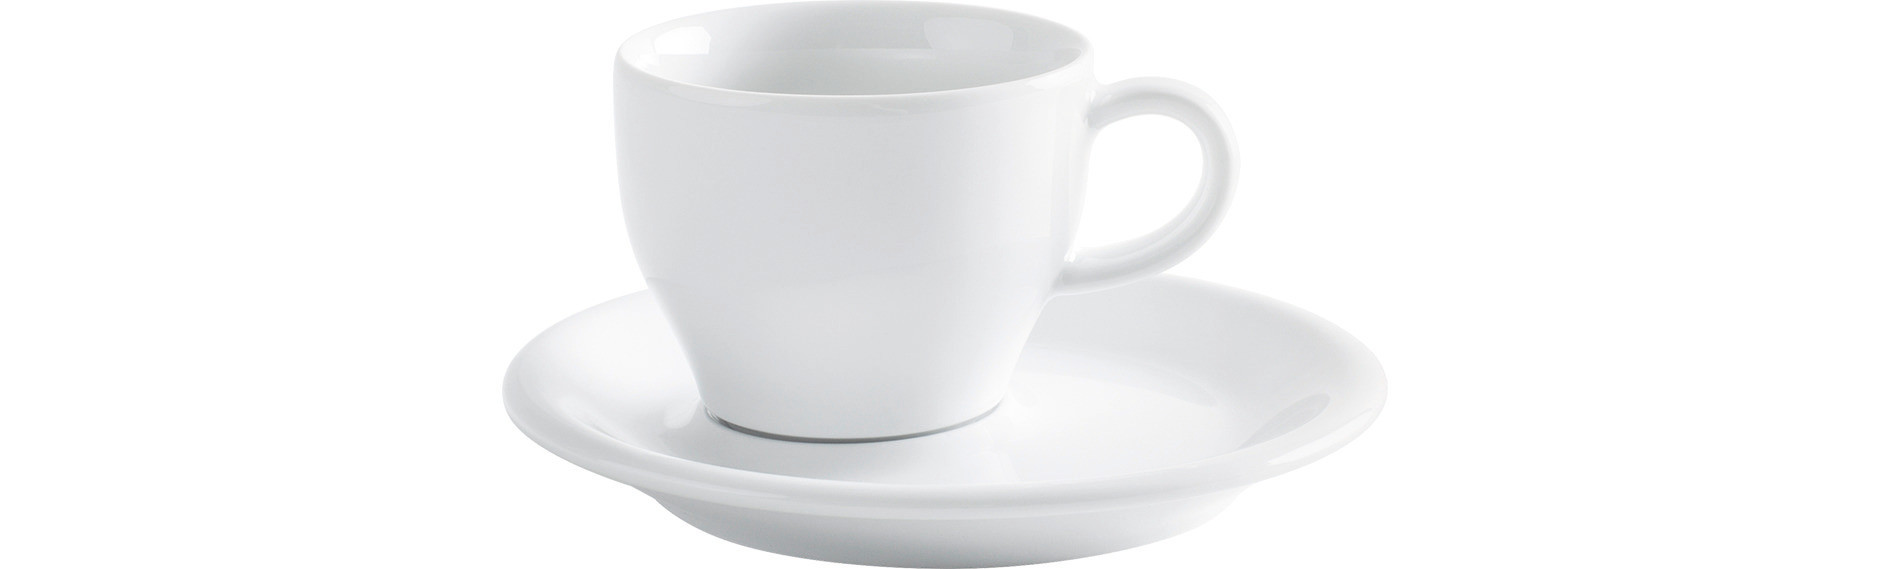 Café Sommelier 2.0, Cappuccinotasse Italiano 0,18 l weiß